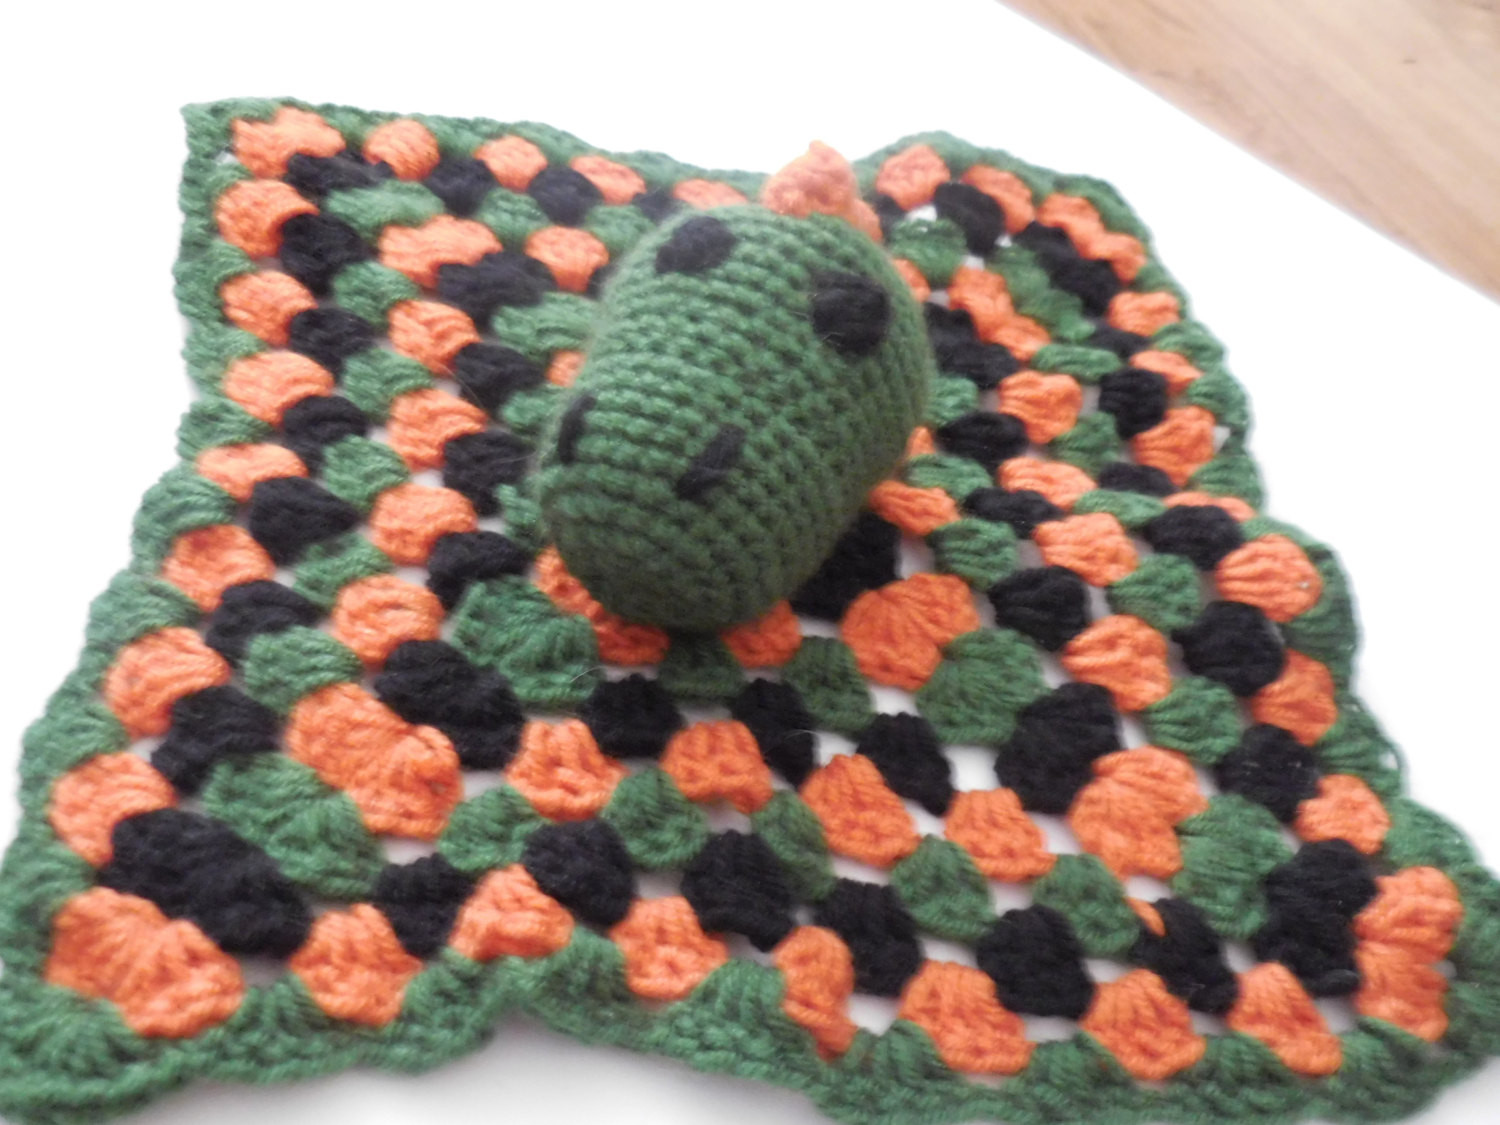 Crochet Dinosaur Blanket Lovely Dinosaur Bsby Blanket Dino Crochet Plush Dinosaur toy Of Awesome 40 Images Crochet Dinosaur Blanket